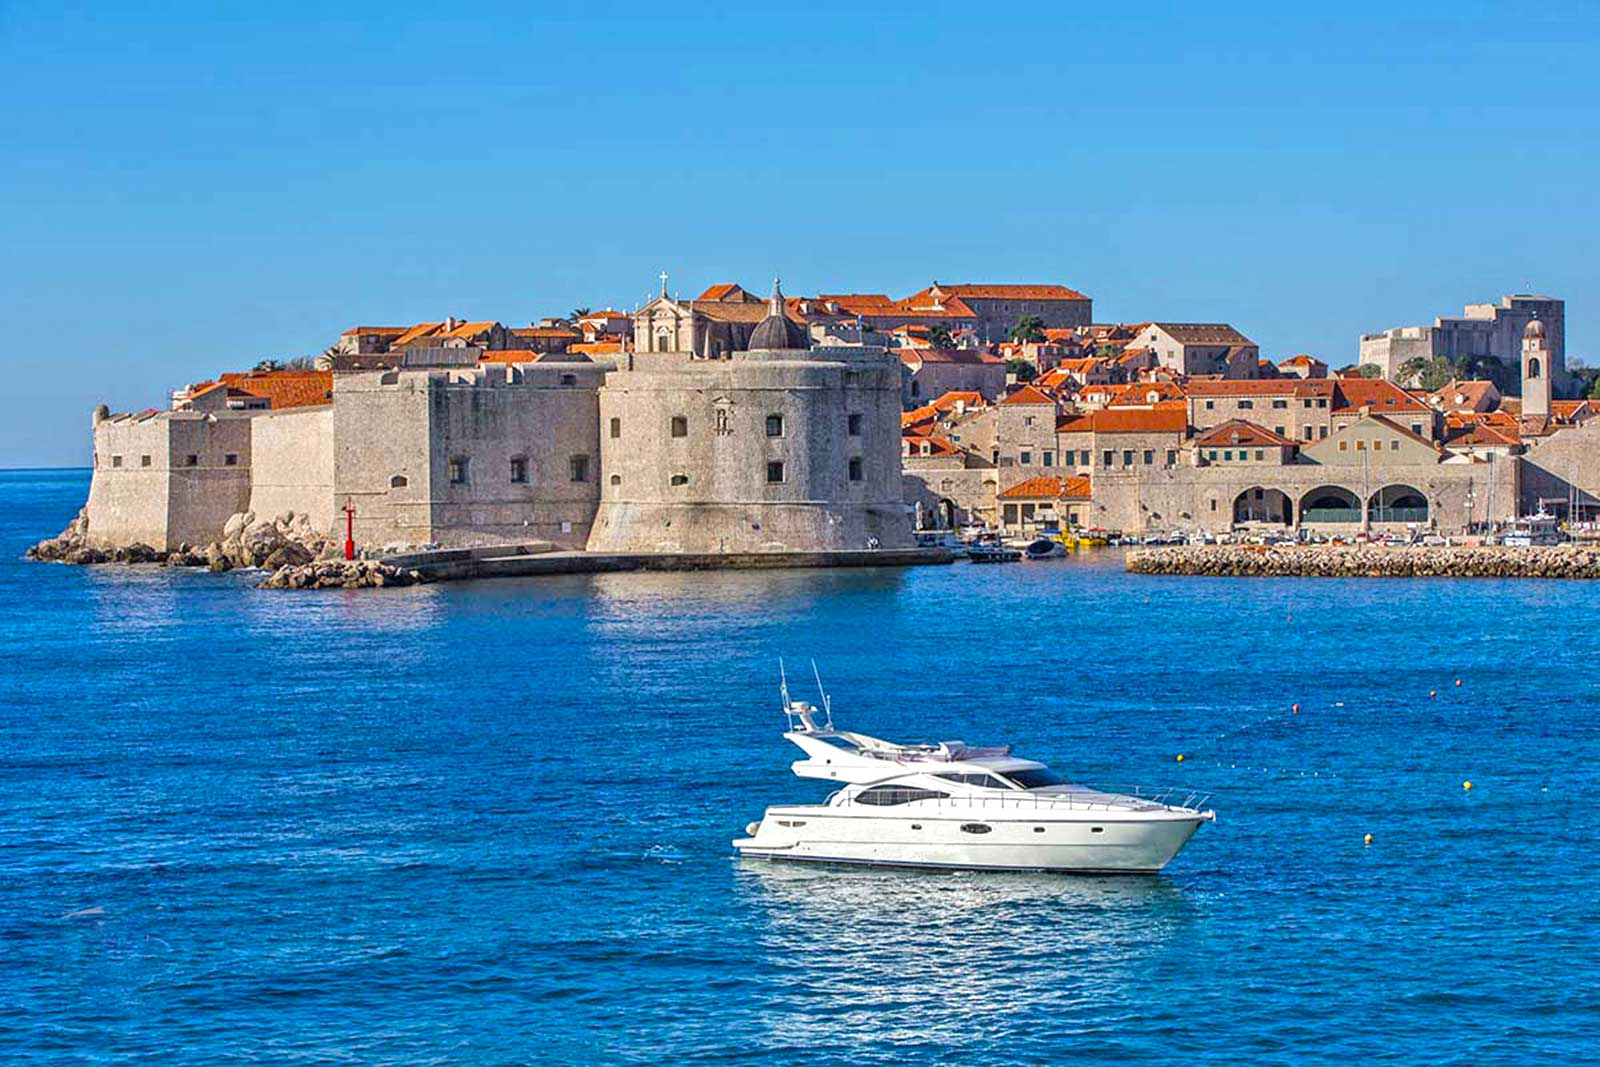 -images-excursions-elaphite-islands-speed-boat-excursion--dubrovnik-boats-02-ferretti-591-dubrovnik-old-town.jpg